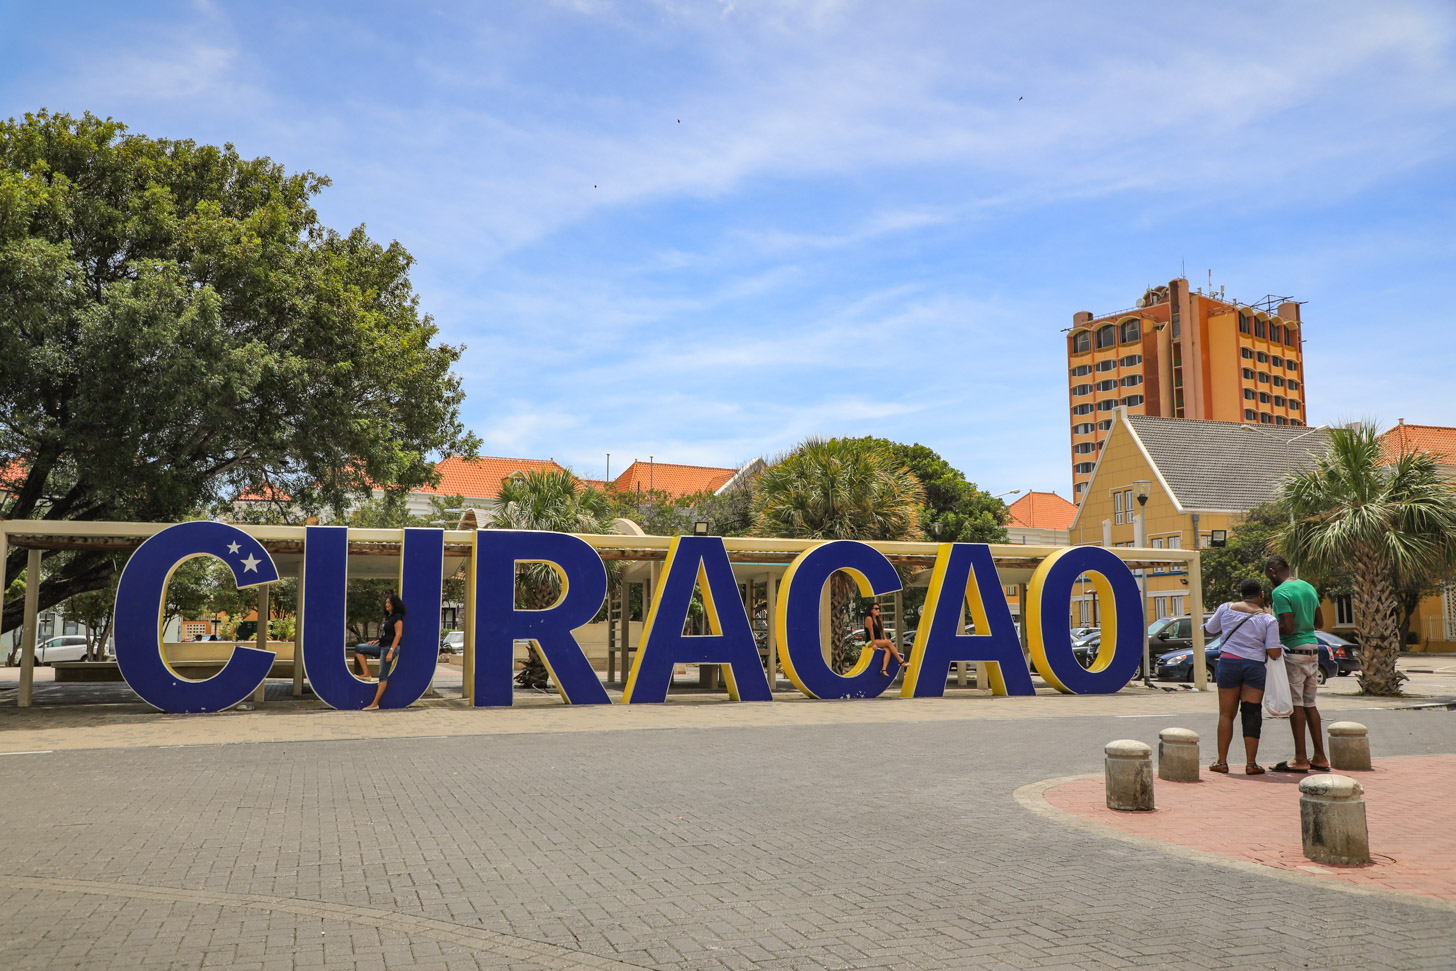 Het Curacao-sign in Willemstad